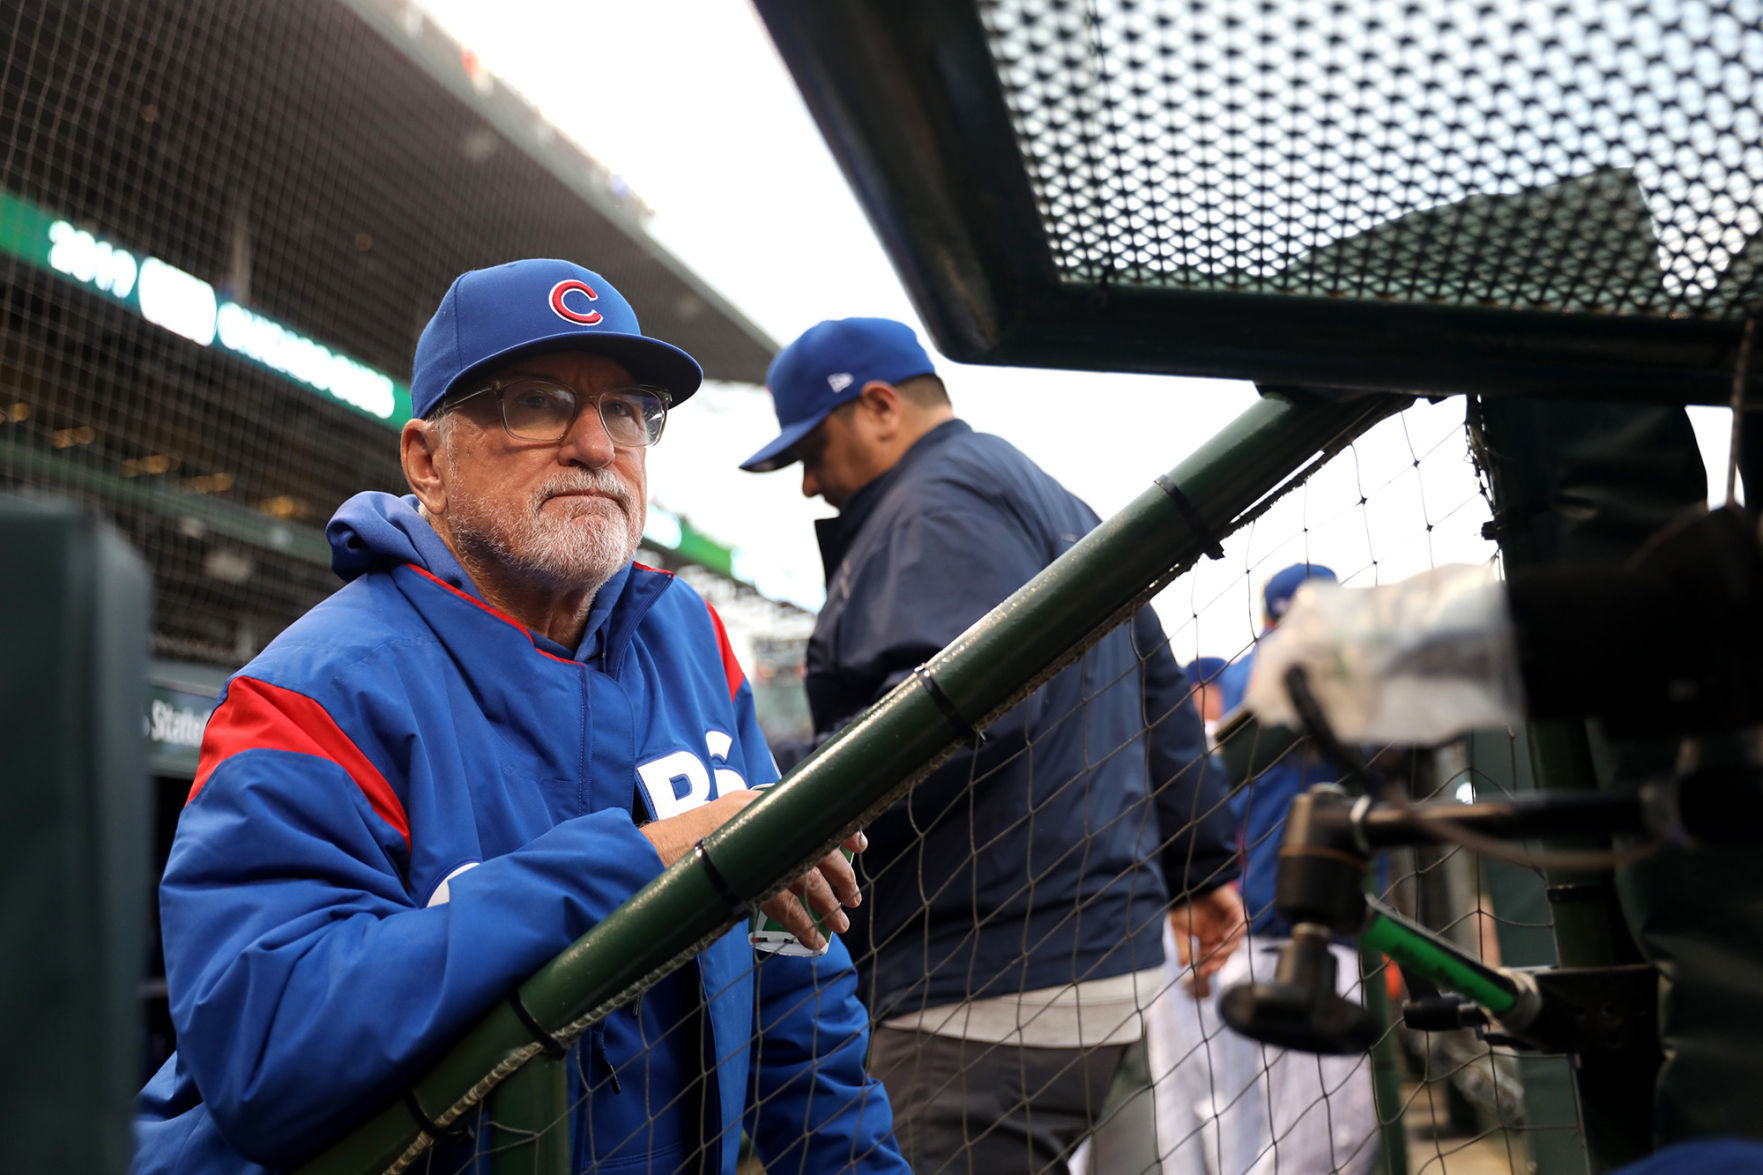 Cubs skipper Maddon baffled by team's road problems